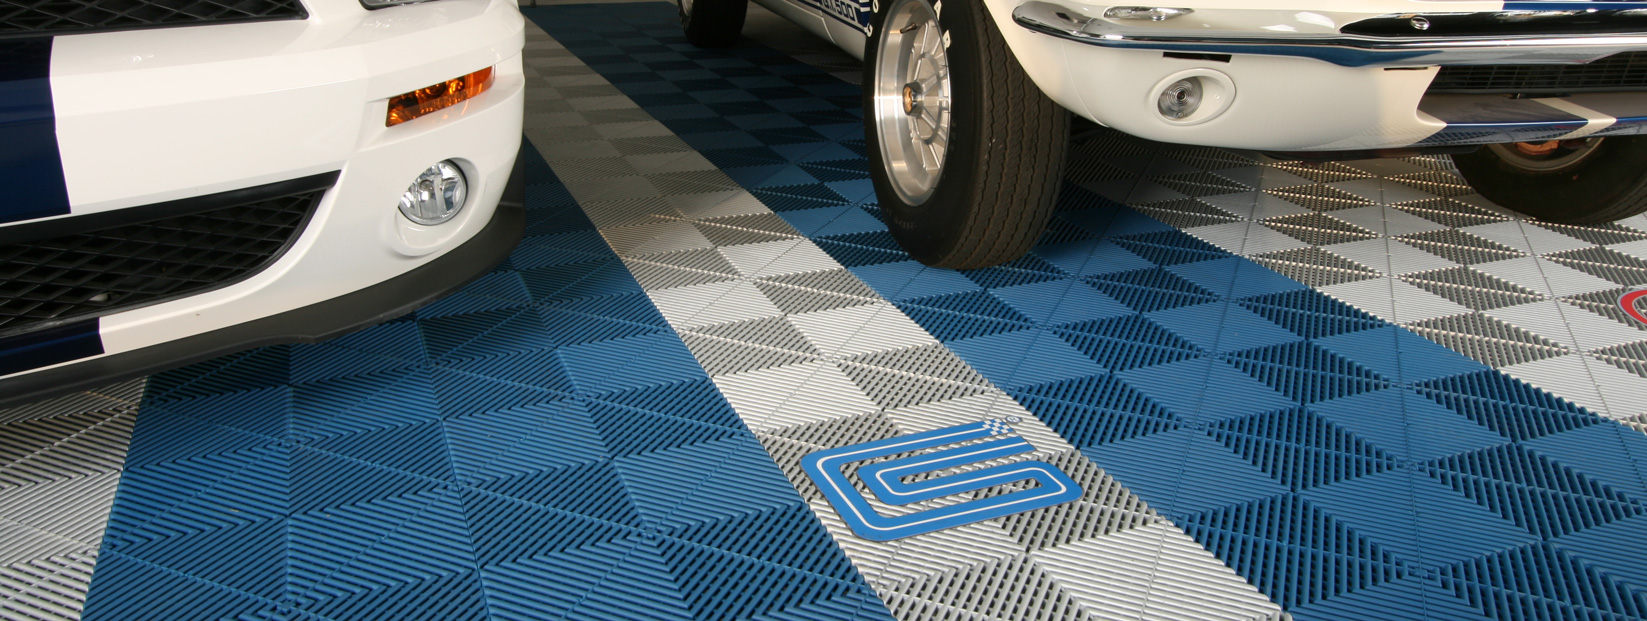 Columbus Garage Flooring